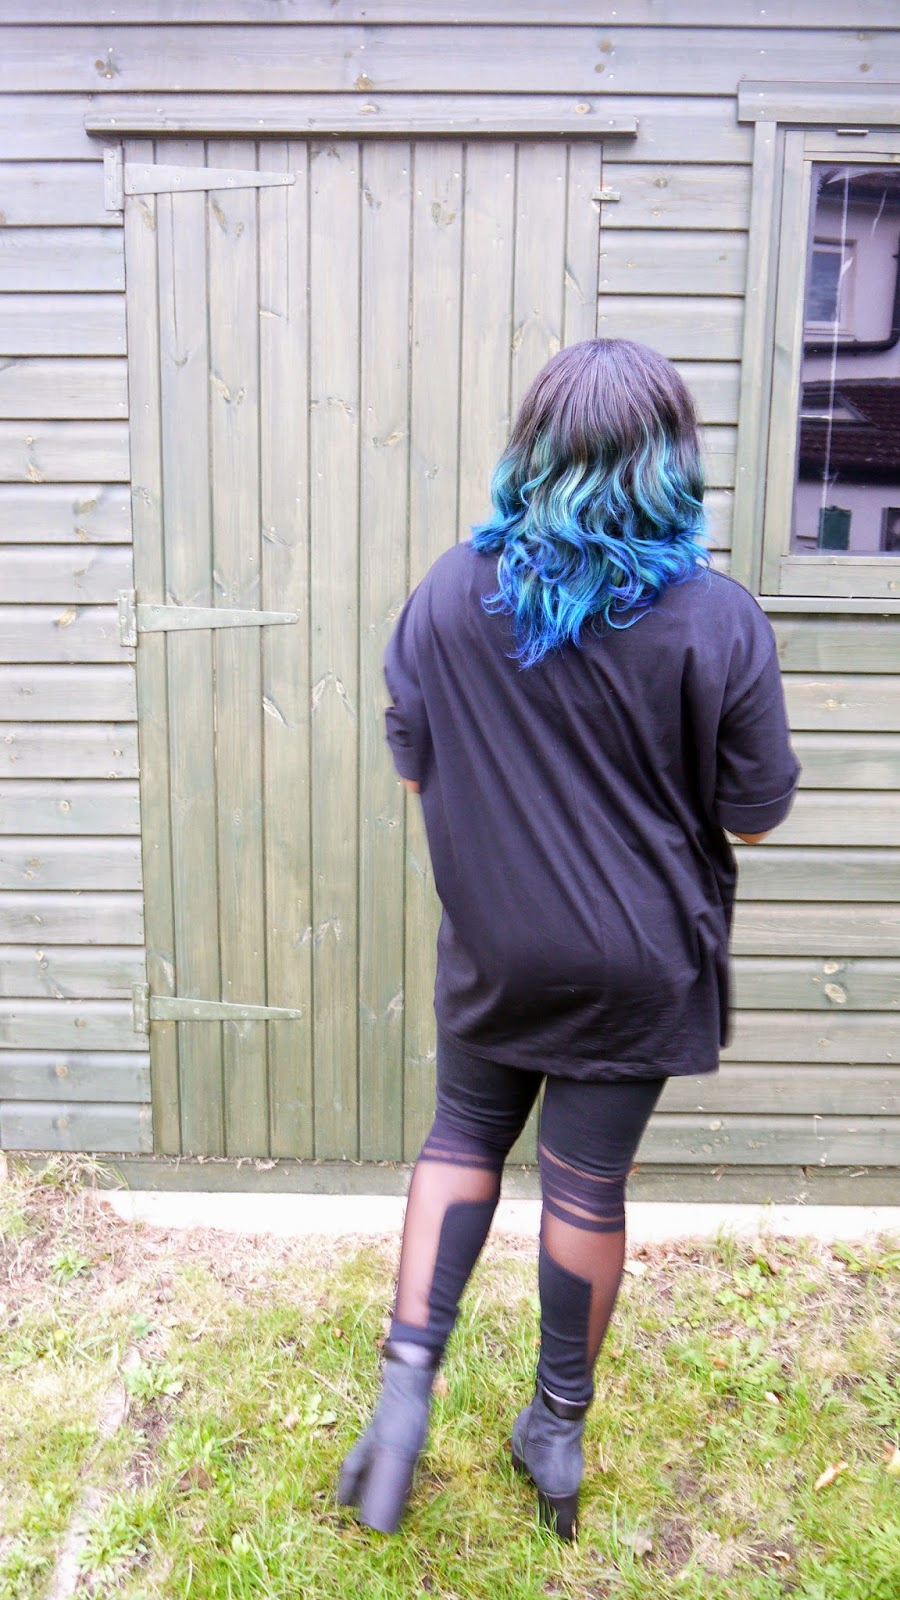 La Mode D'Emm Black ASOS Oversized T-Shirt Mesh Panel Topshop Leggings New Look Chunky Cleated Black Boots